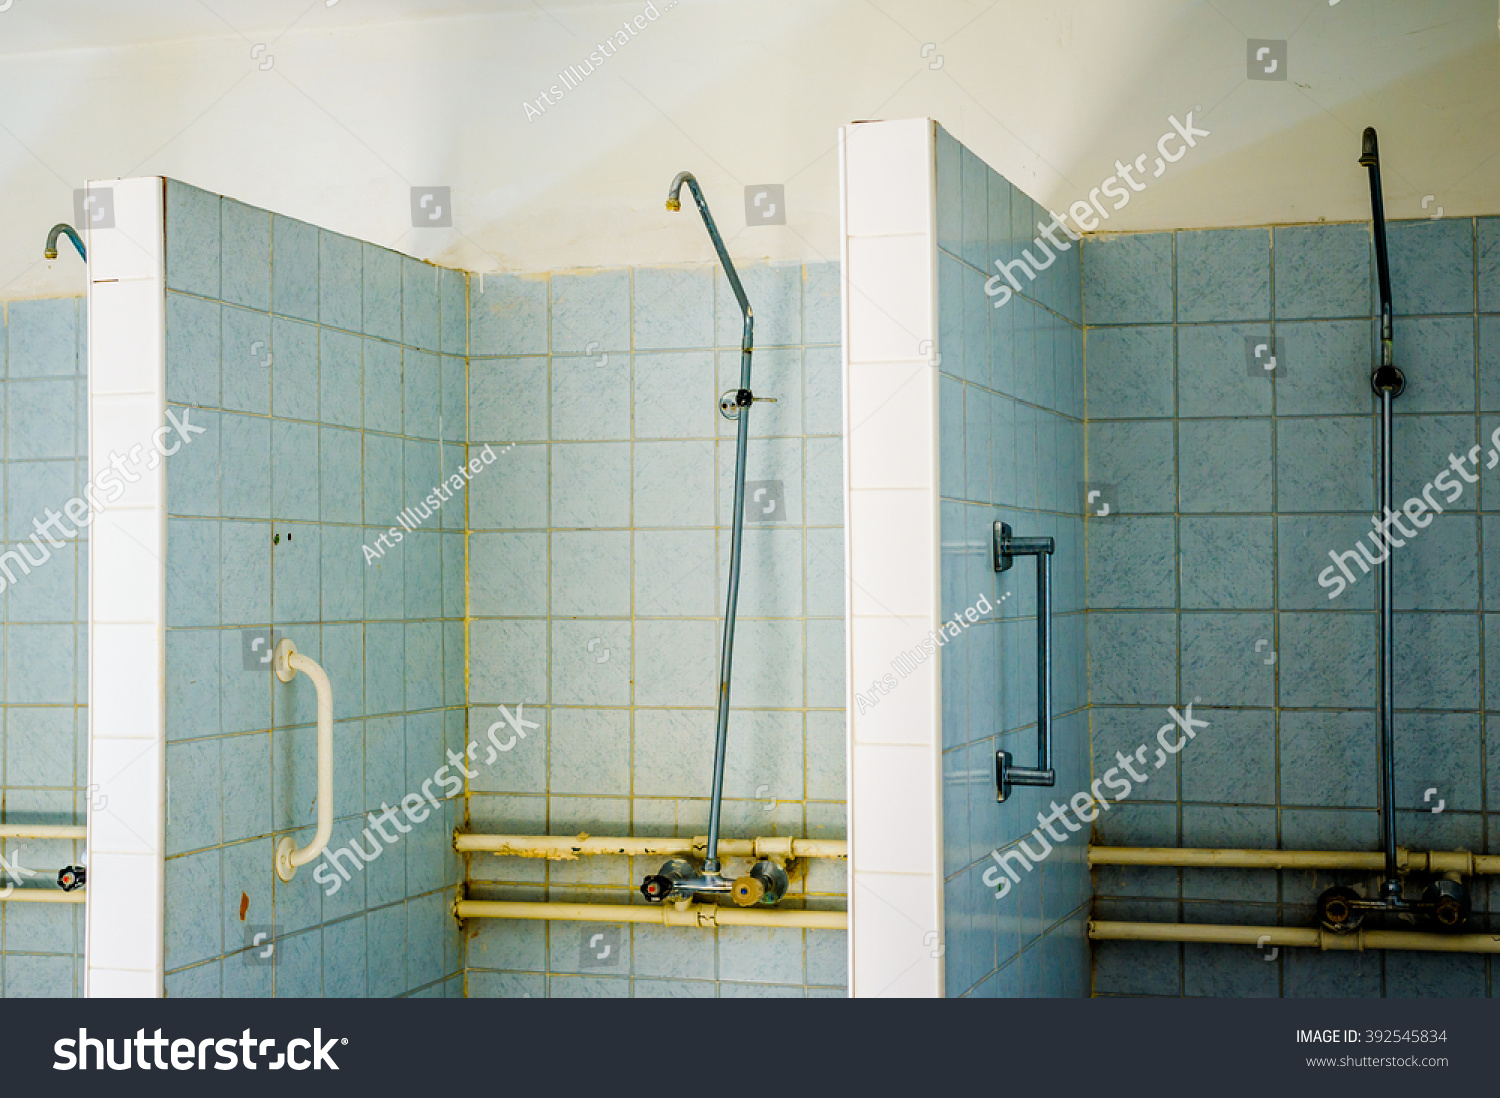 Blue Tiled Weathered Shower Cabins Row Stock Photo (Royalty Free ...